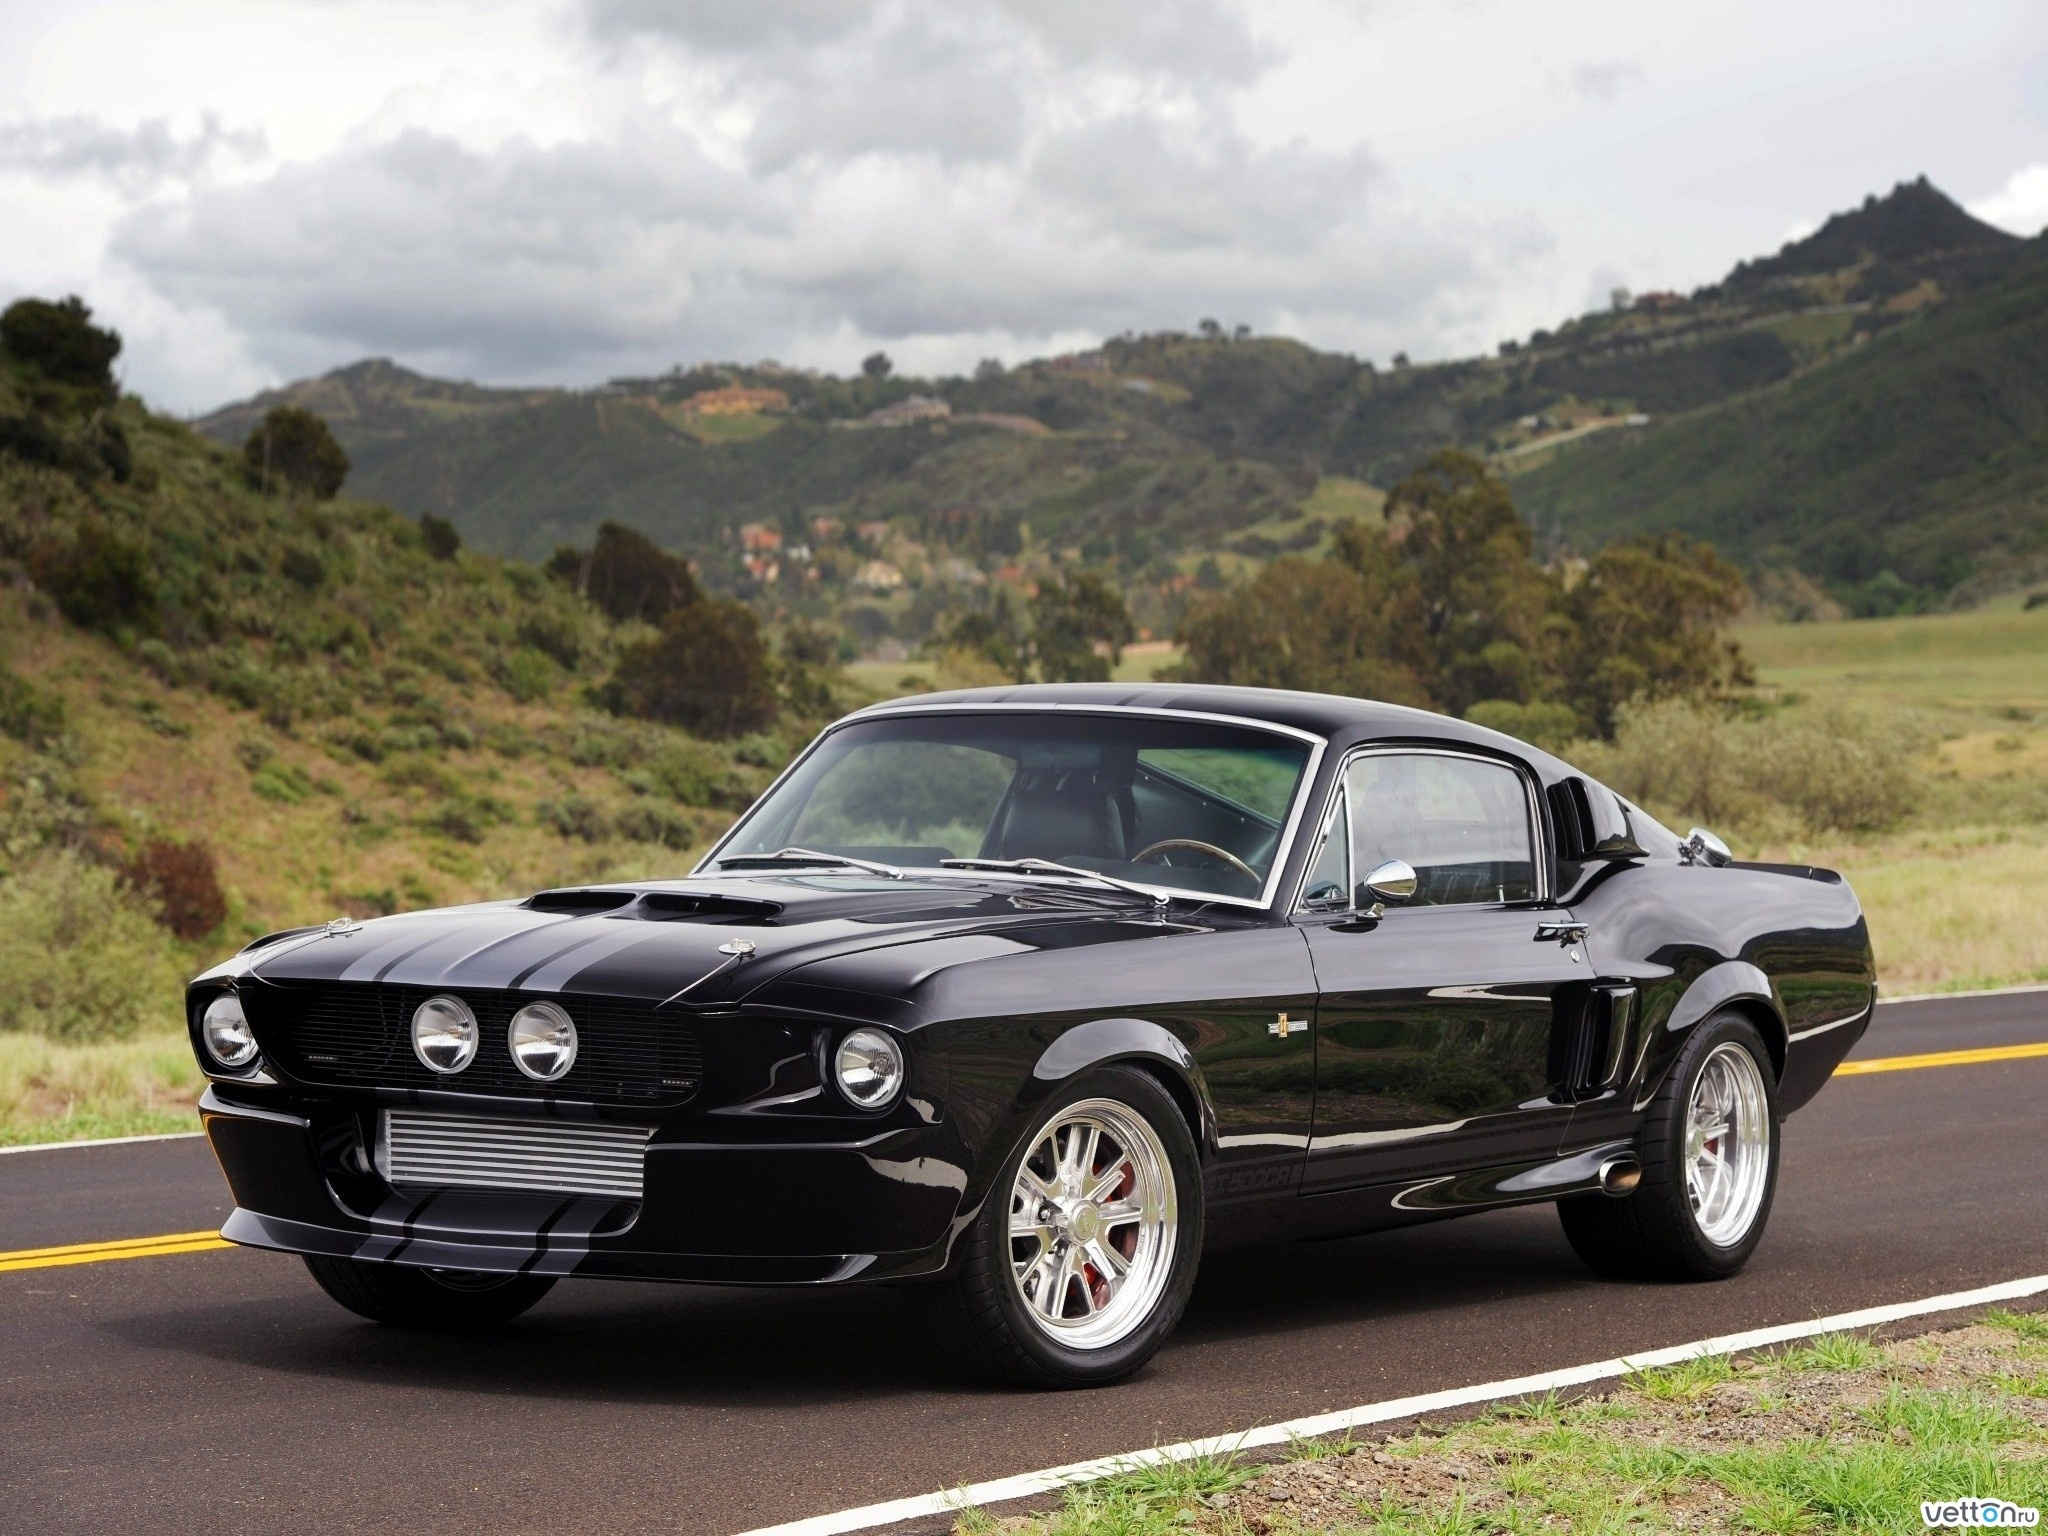 1969 Ford Mustang HD Desktop Wallpaper HD Desktop Wallpaper 2048x1536